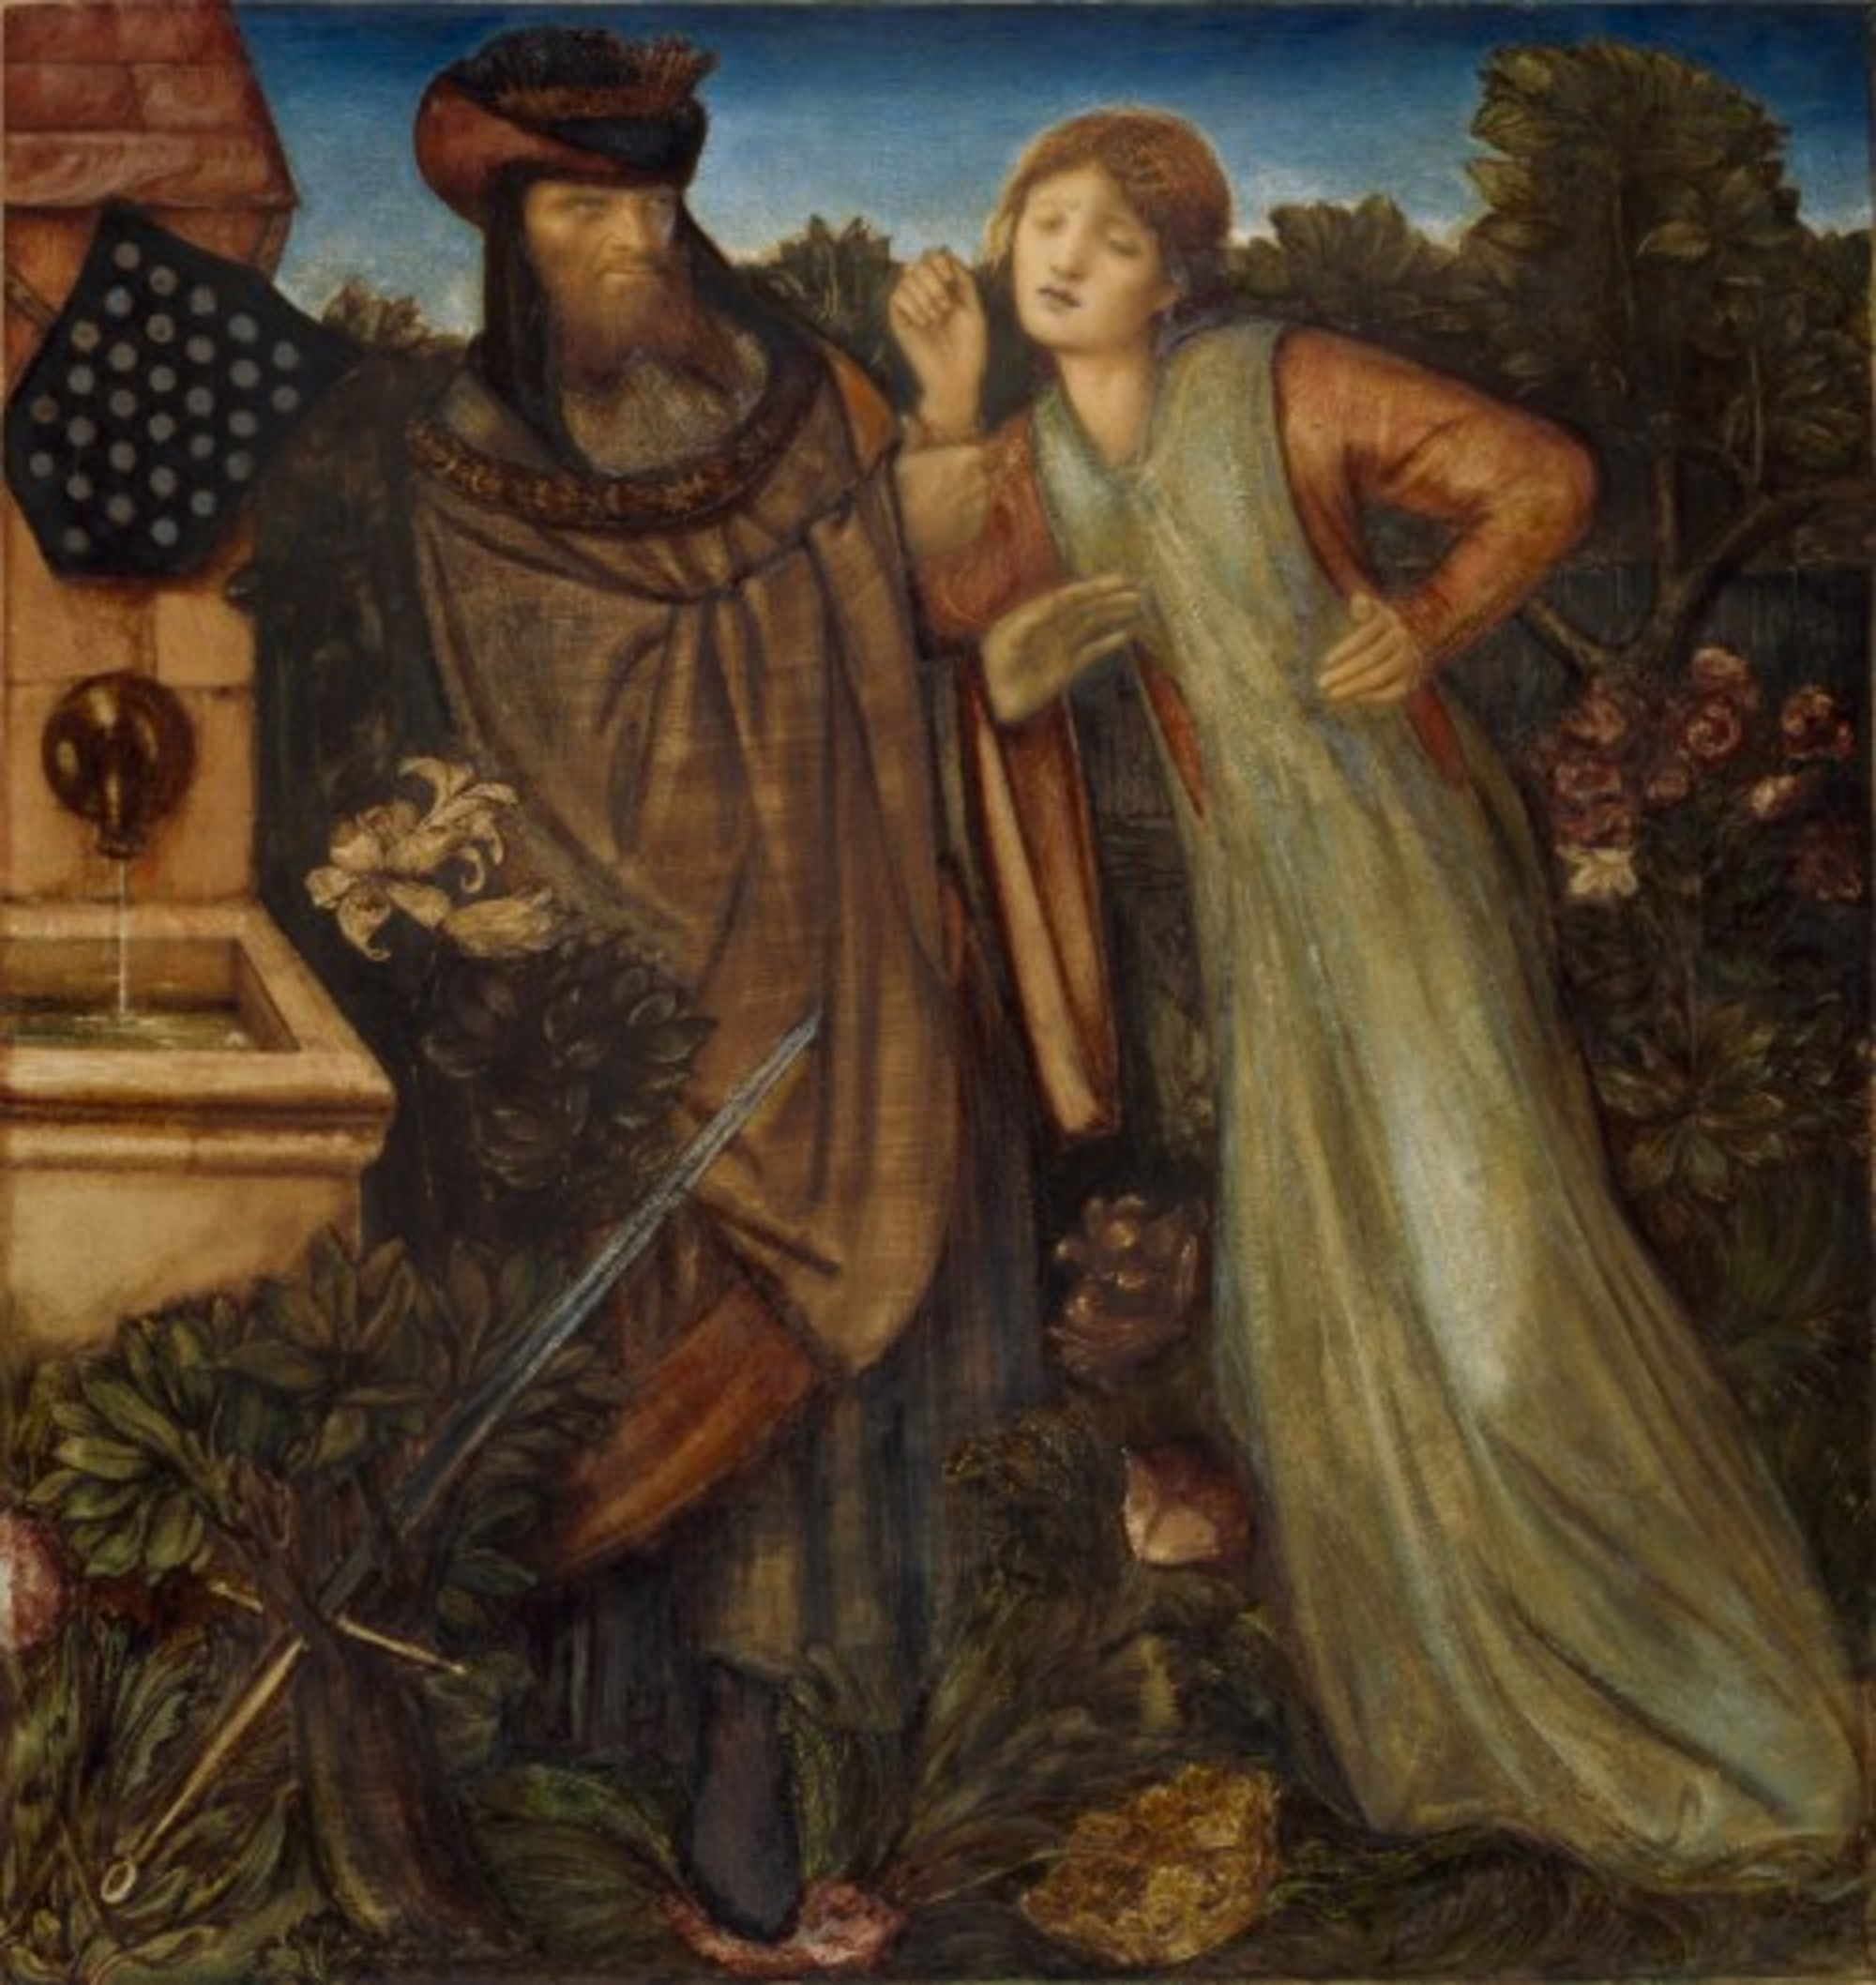 Edward-Burne-Jones---King-Mark-and-La-Belle-Iseult---Google-Art-Project.jpg